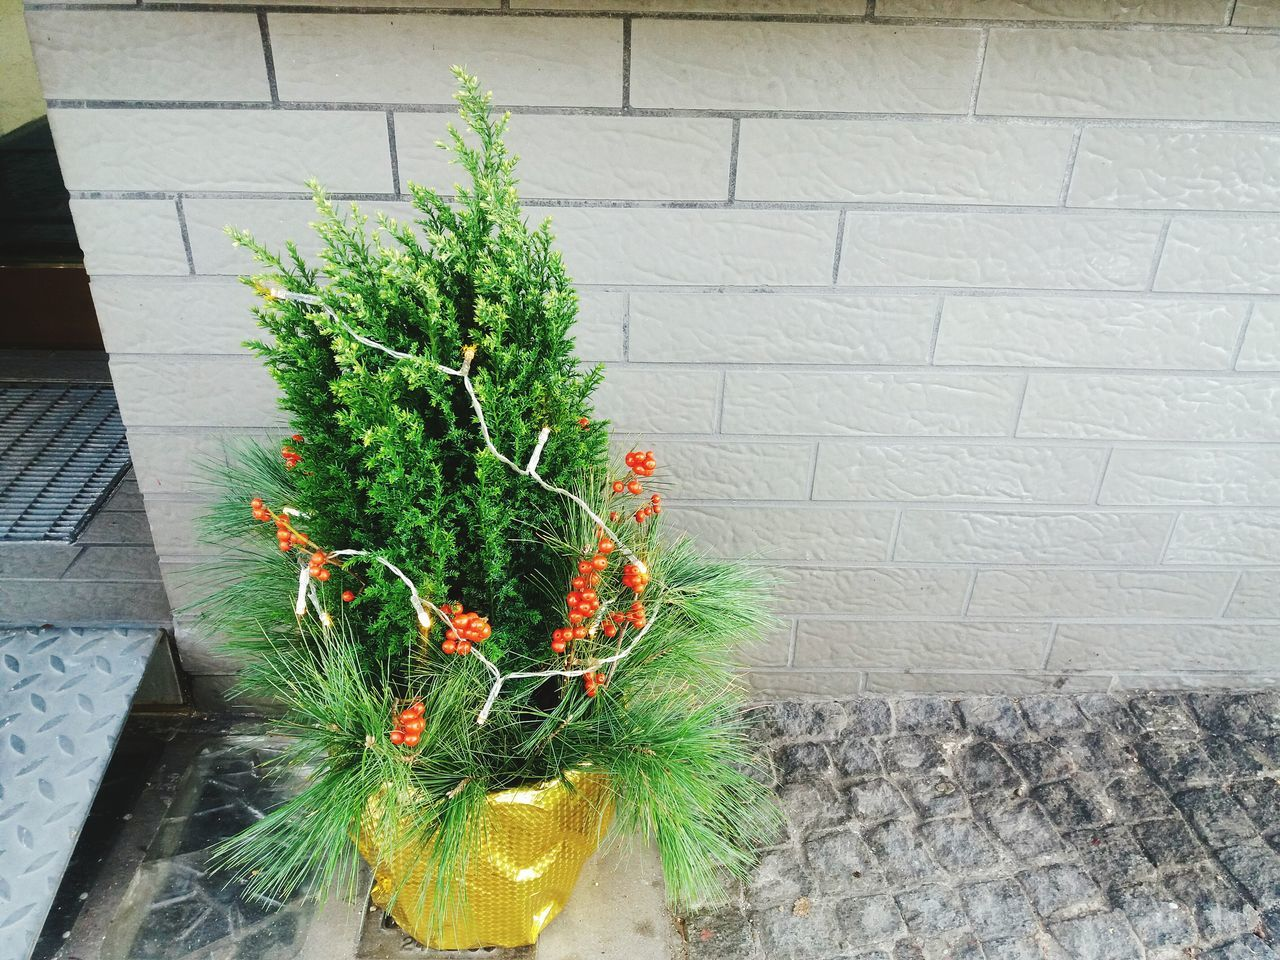 A miniature christmas tree Plant No People Green Color Day Nature Freshness Outdoors Xmas Xmaslights Xmas Decorations Xmastree Xmas🎄 Xmas Tree Christmas Tree Christmas Decorations Christmas Lights Christmas Time Green Color Close-up